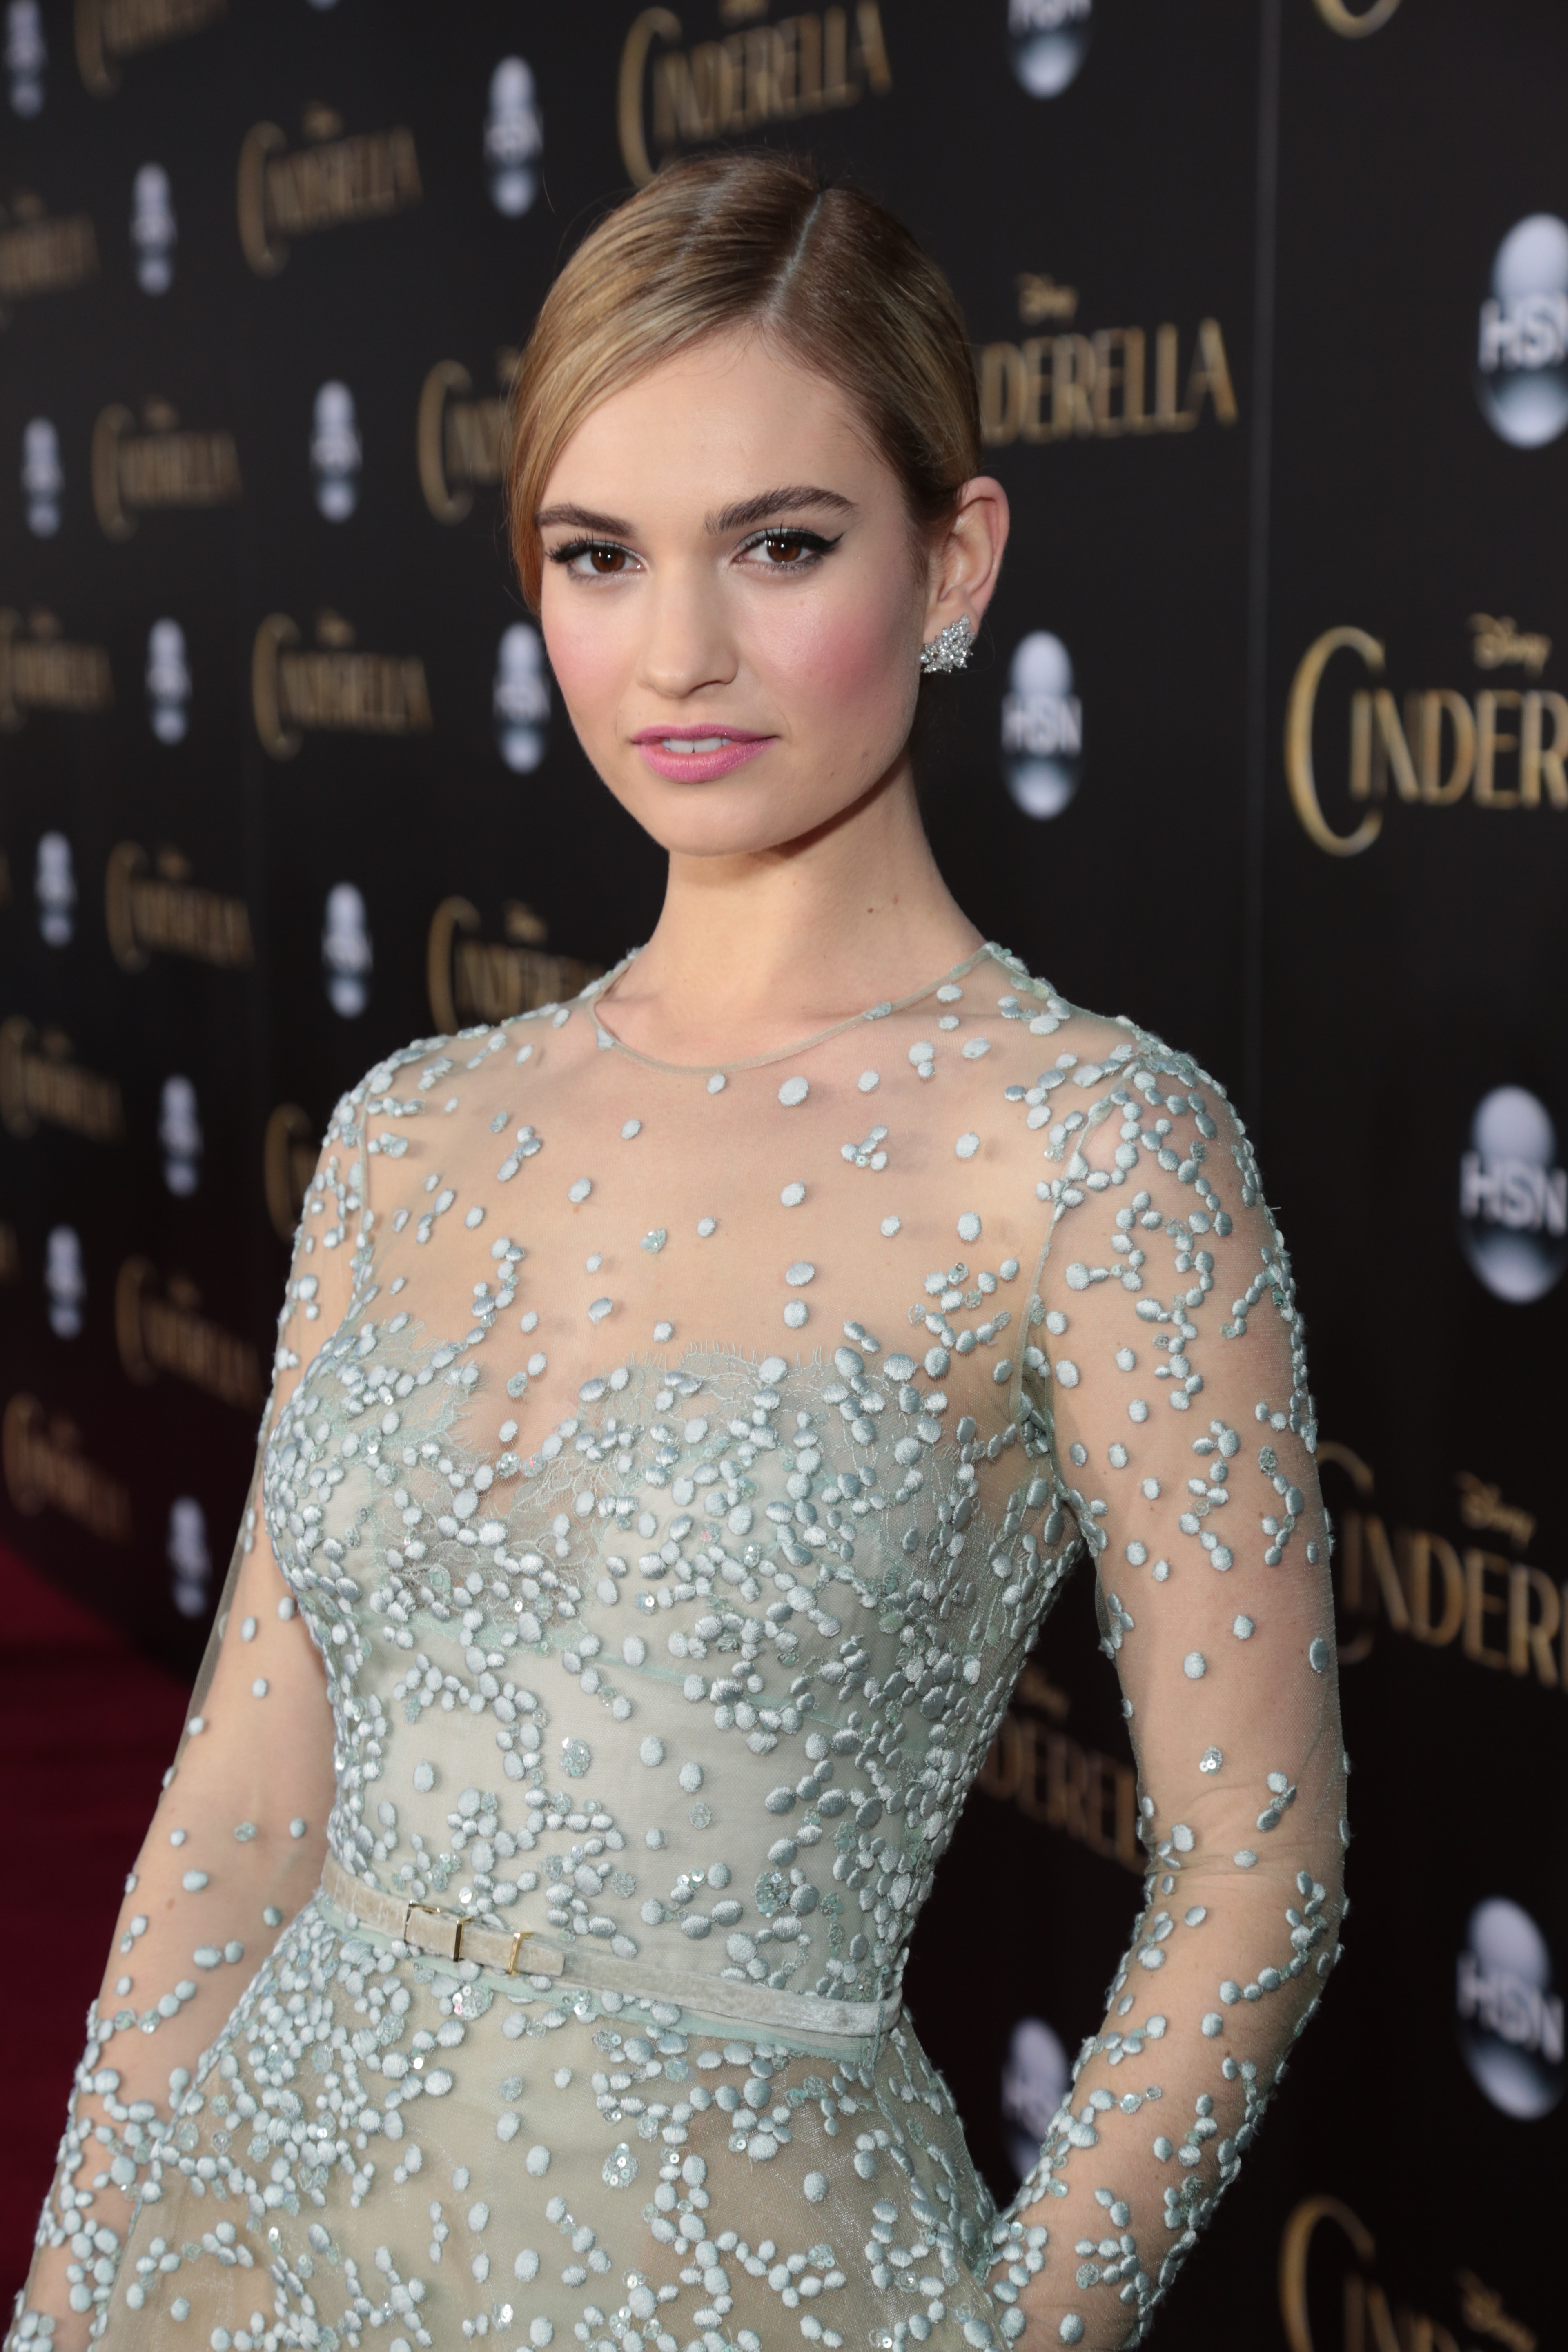 Spotted: Lily James in Elie Saab Couture